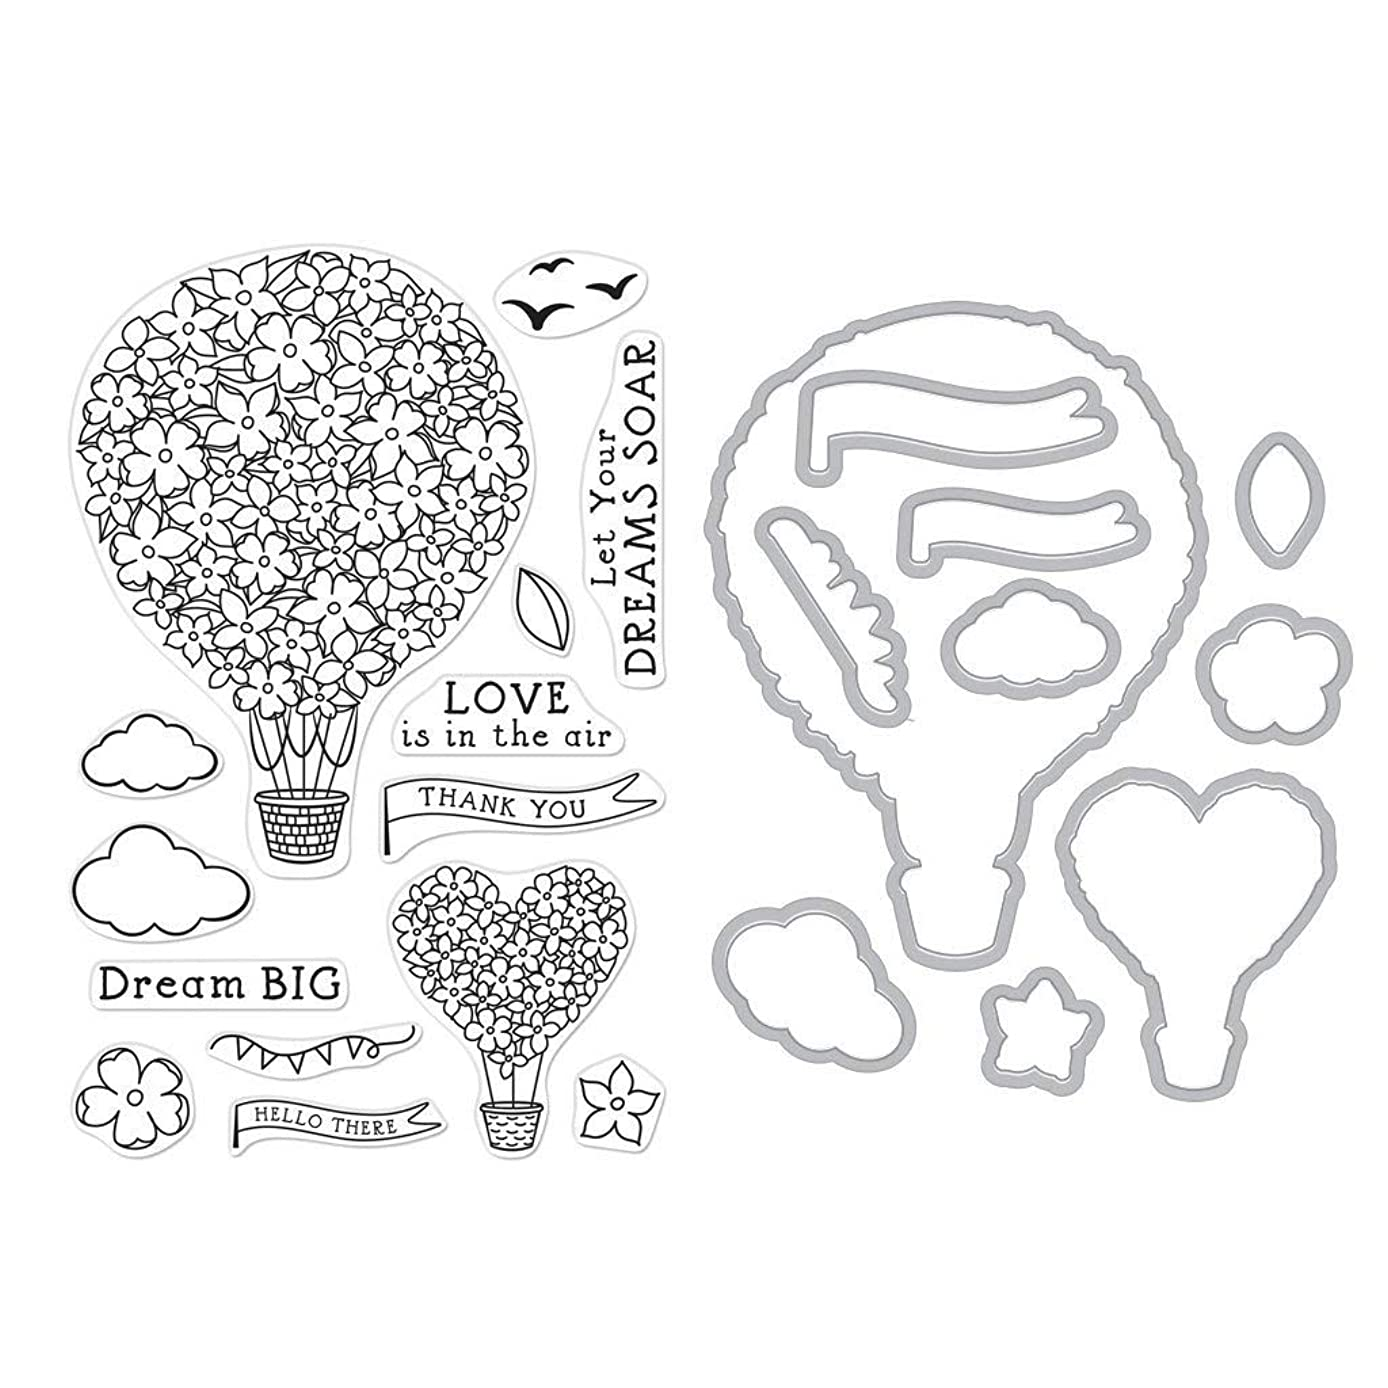 Hero Arts SB229 Stamp and Frame Cuts Combo Set, Hot Air Blooms